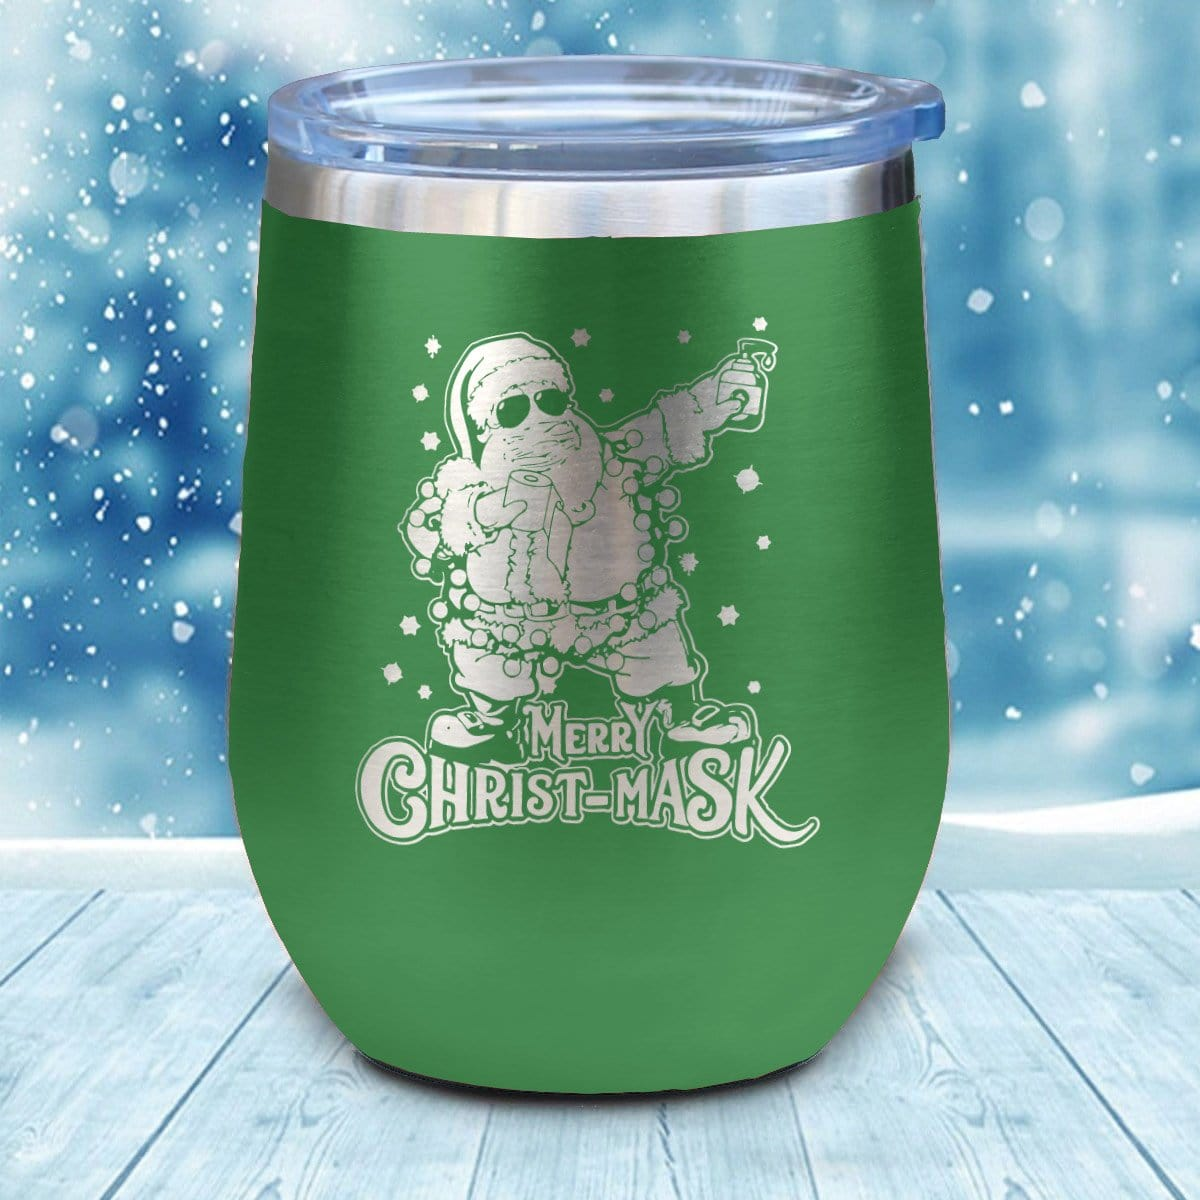 Merry Christ-Mask Christmas Wine Glass